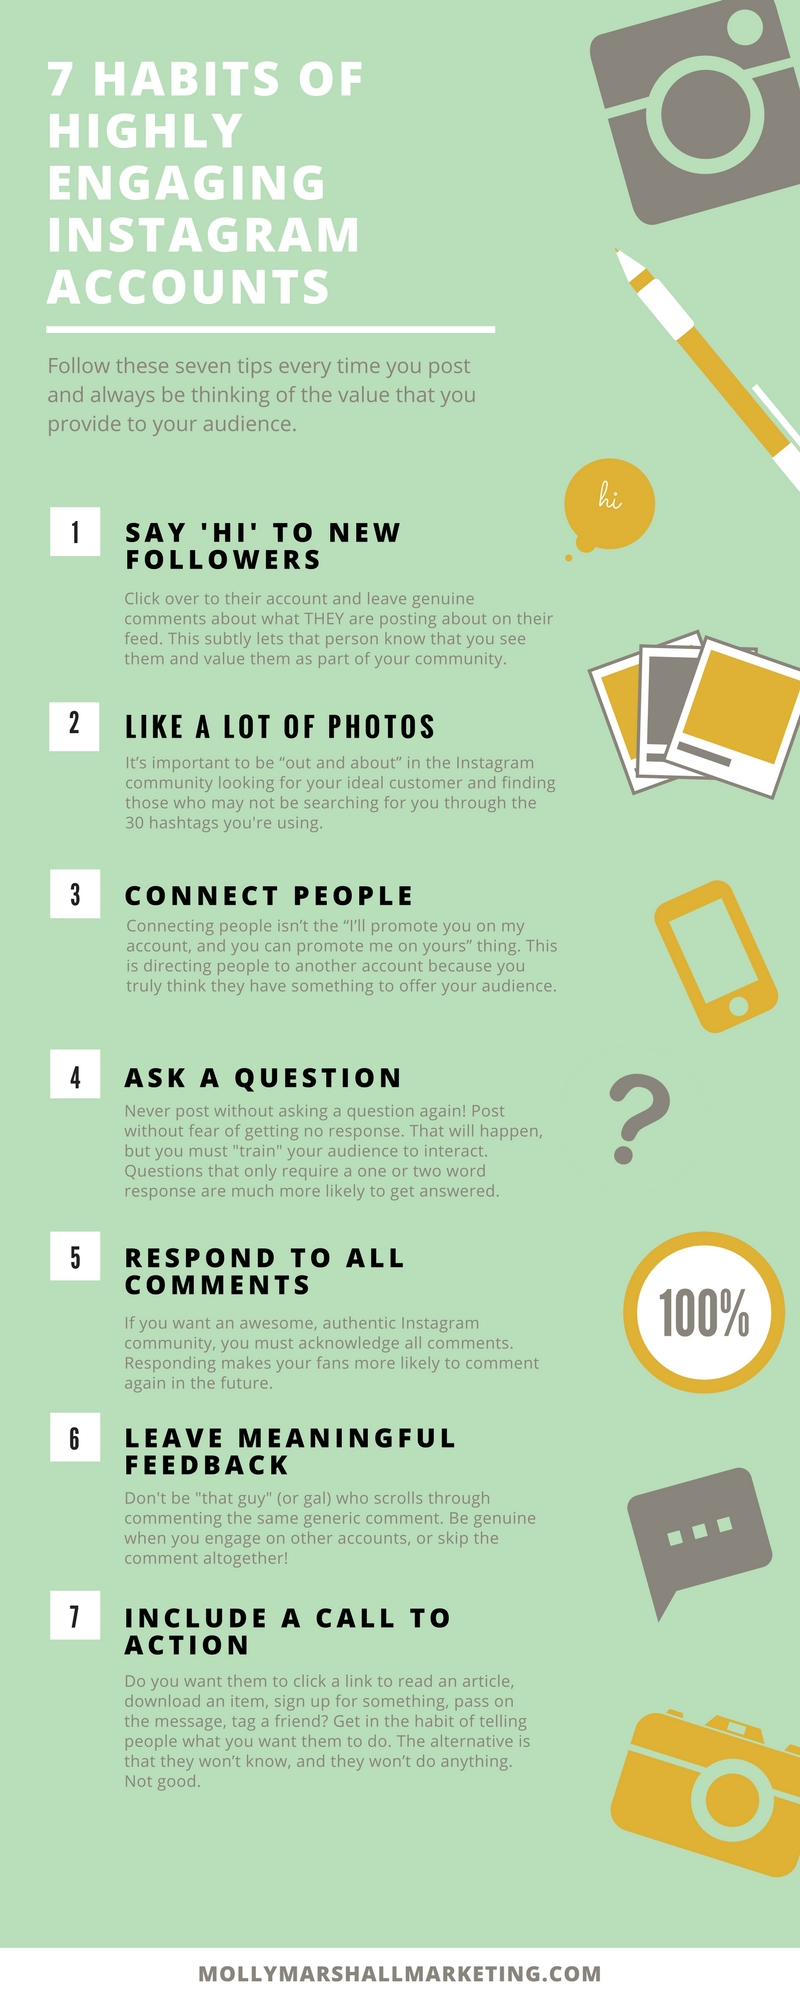 7-Habits-of-Highly-Engaging-Instagram-Accounts-Infographic | Molly